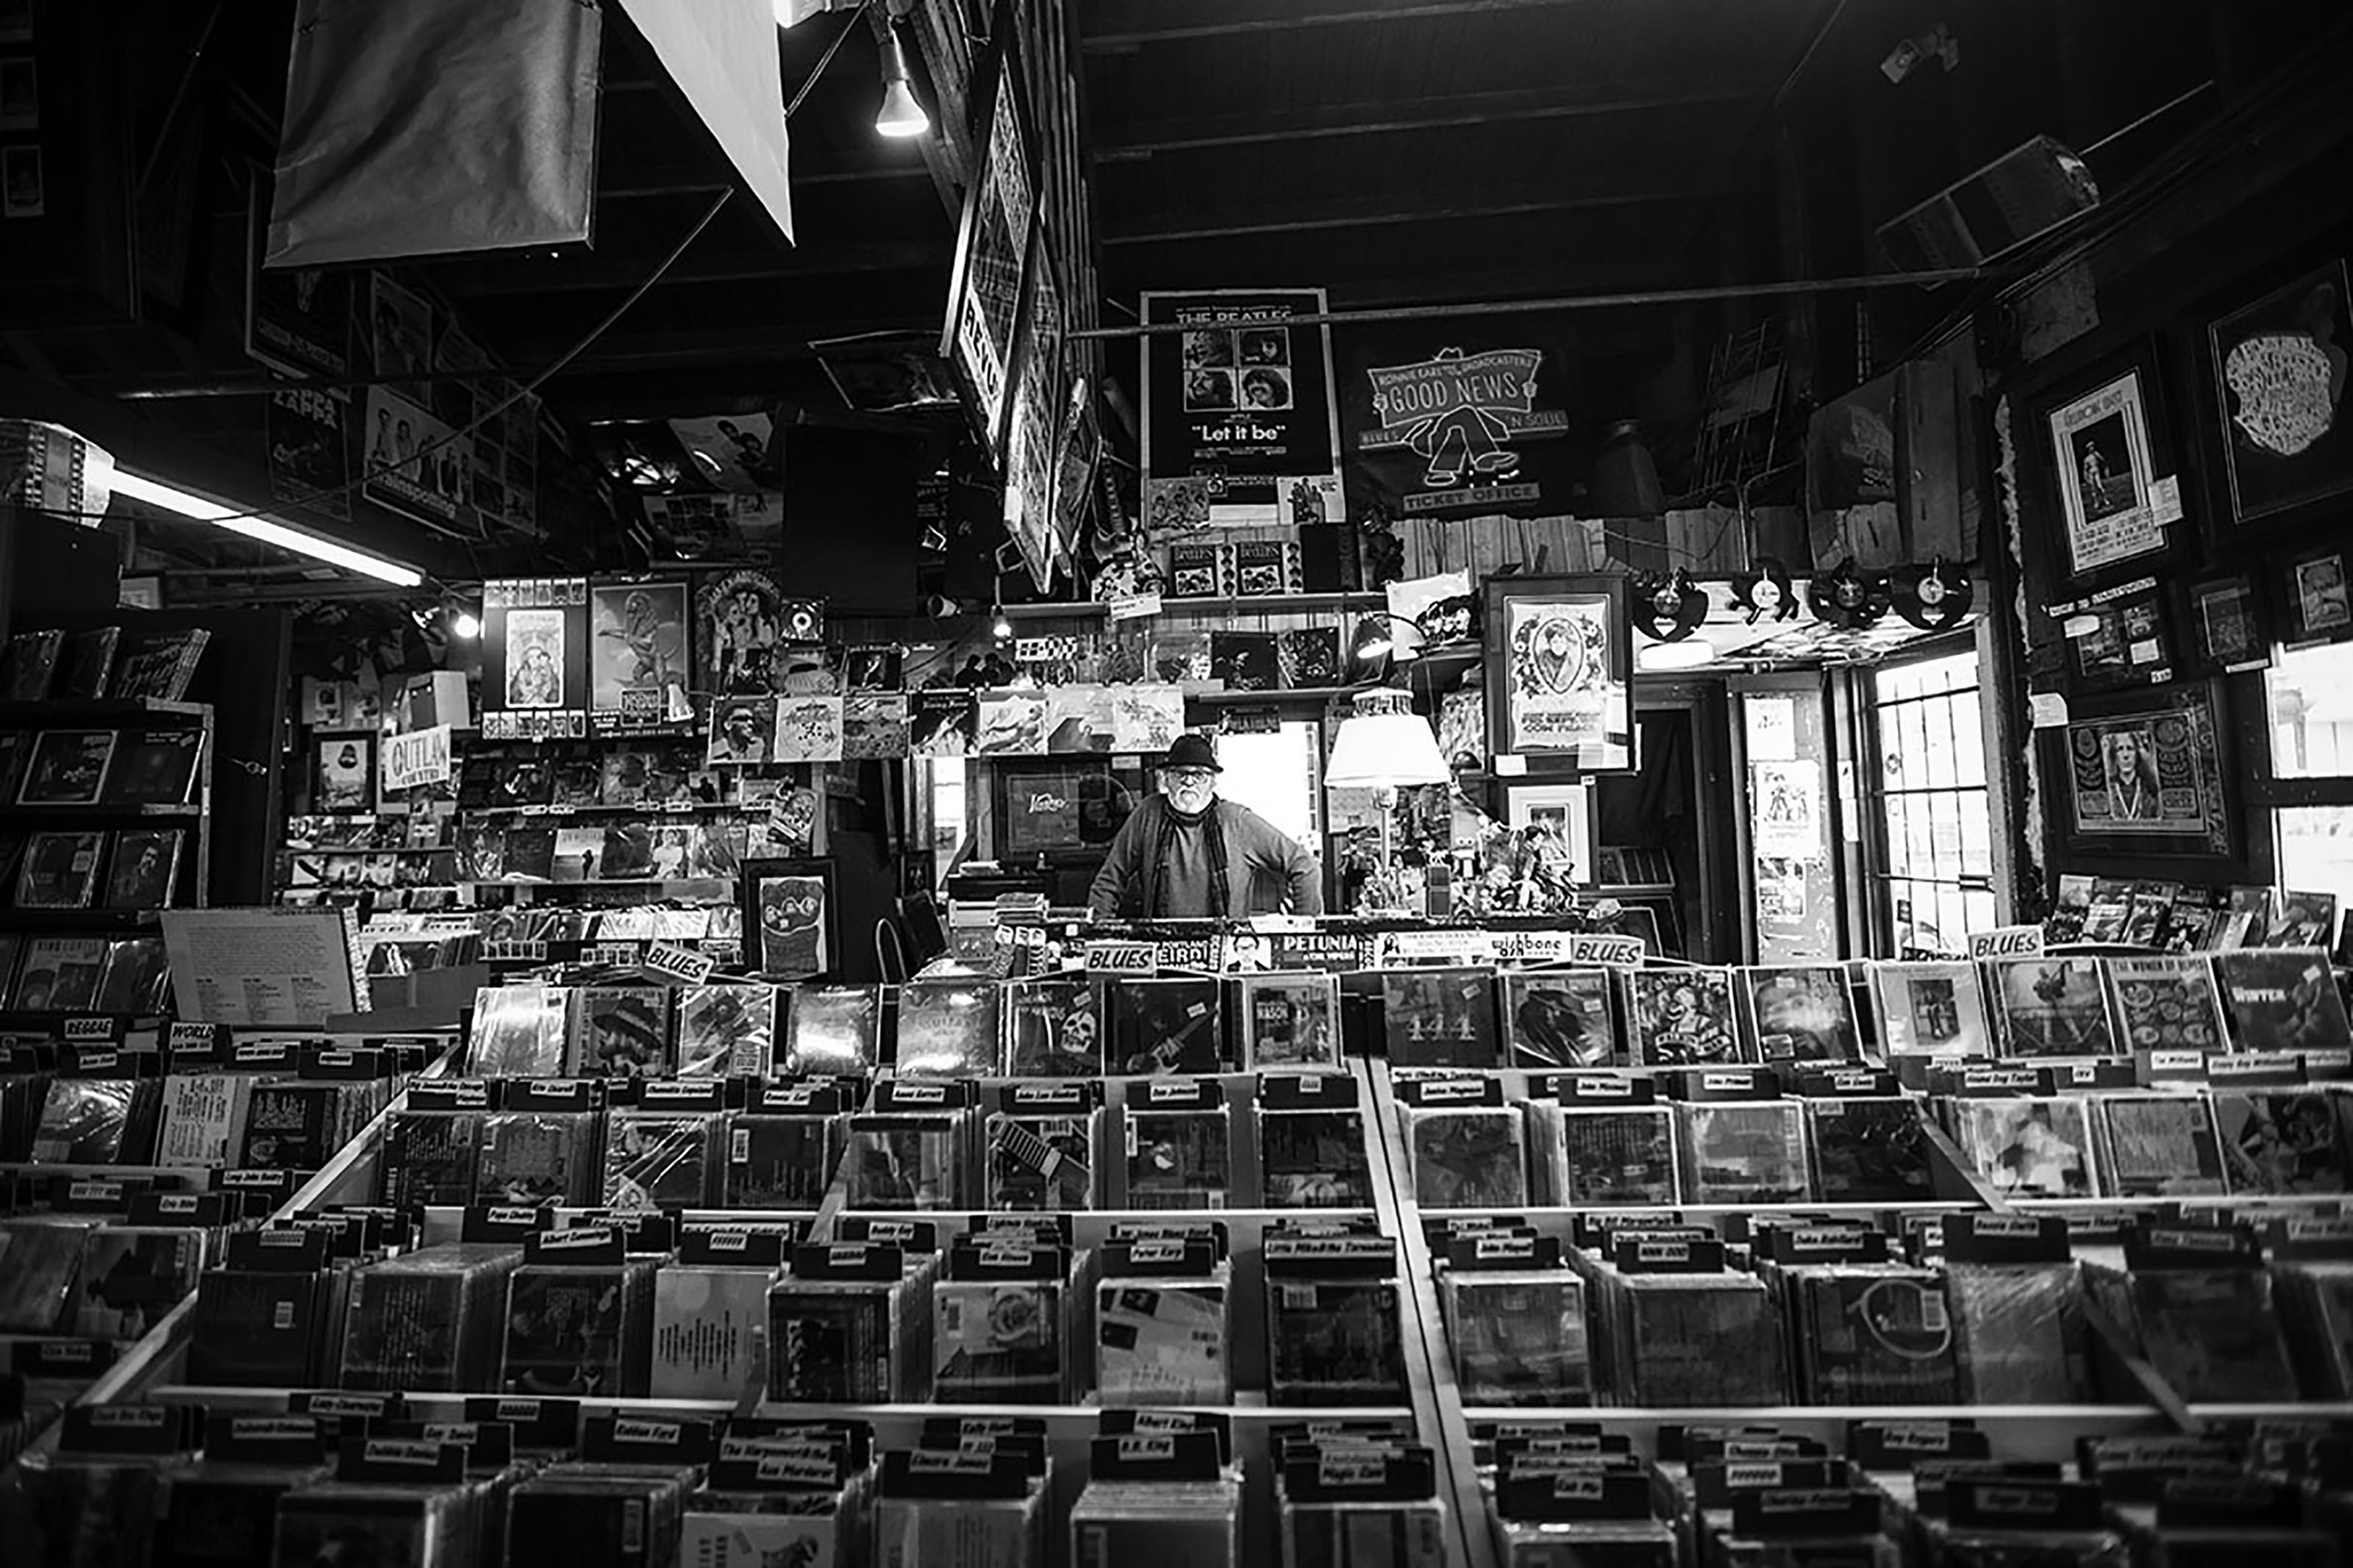 Jerry Keogh, owner of Heritage Posters & Music, is surrounded by the records and other paraphernalia that fill his shop on Monday, Feb. 29, 2016.